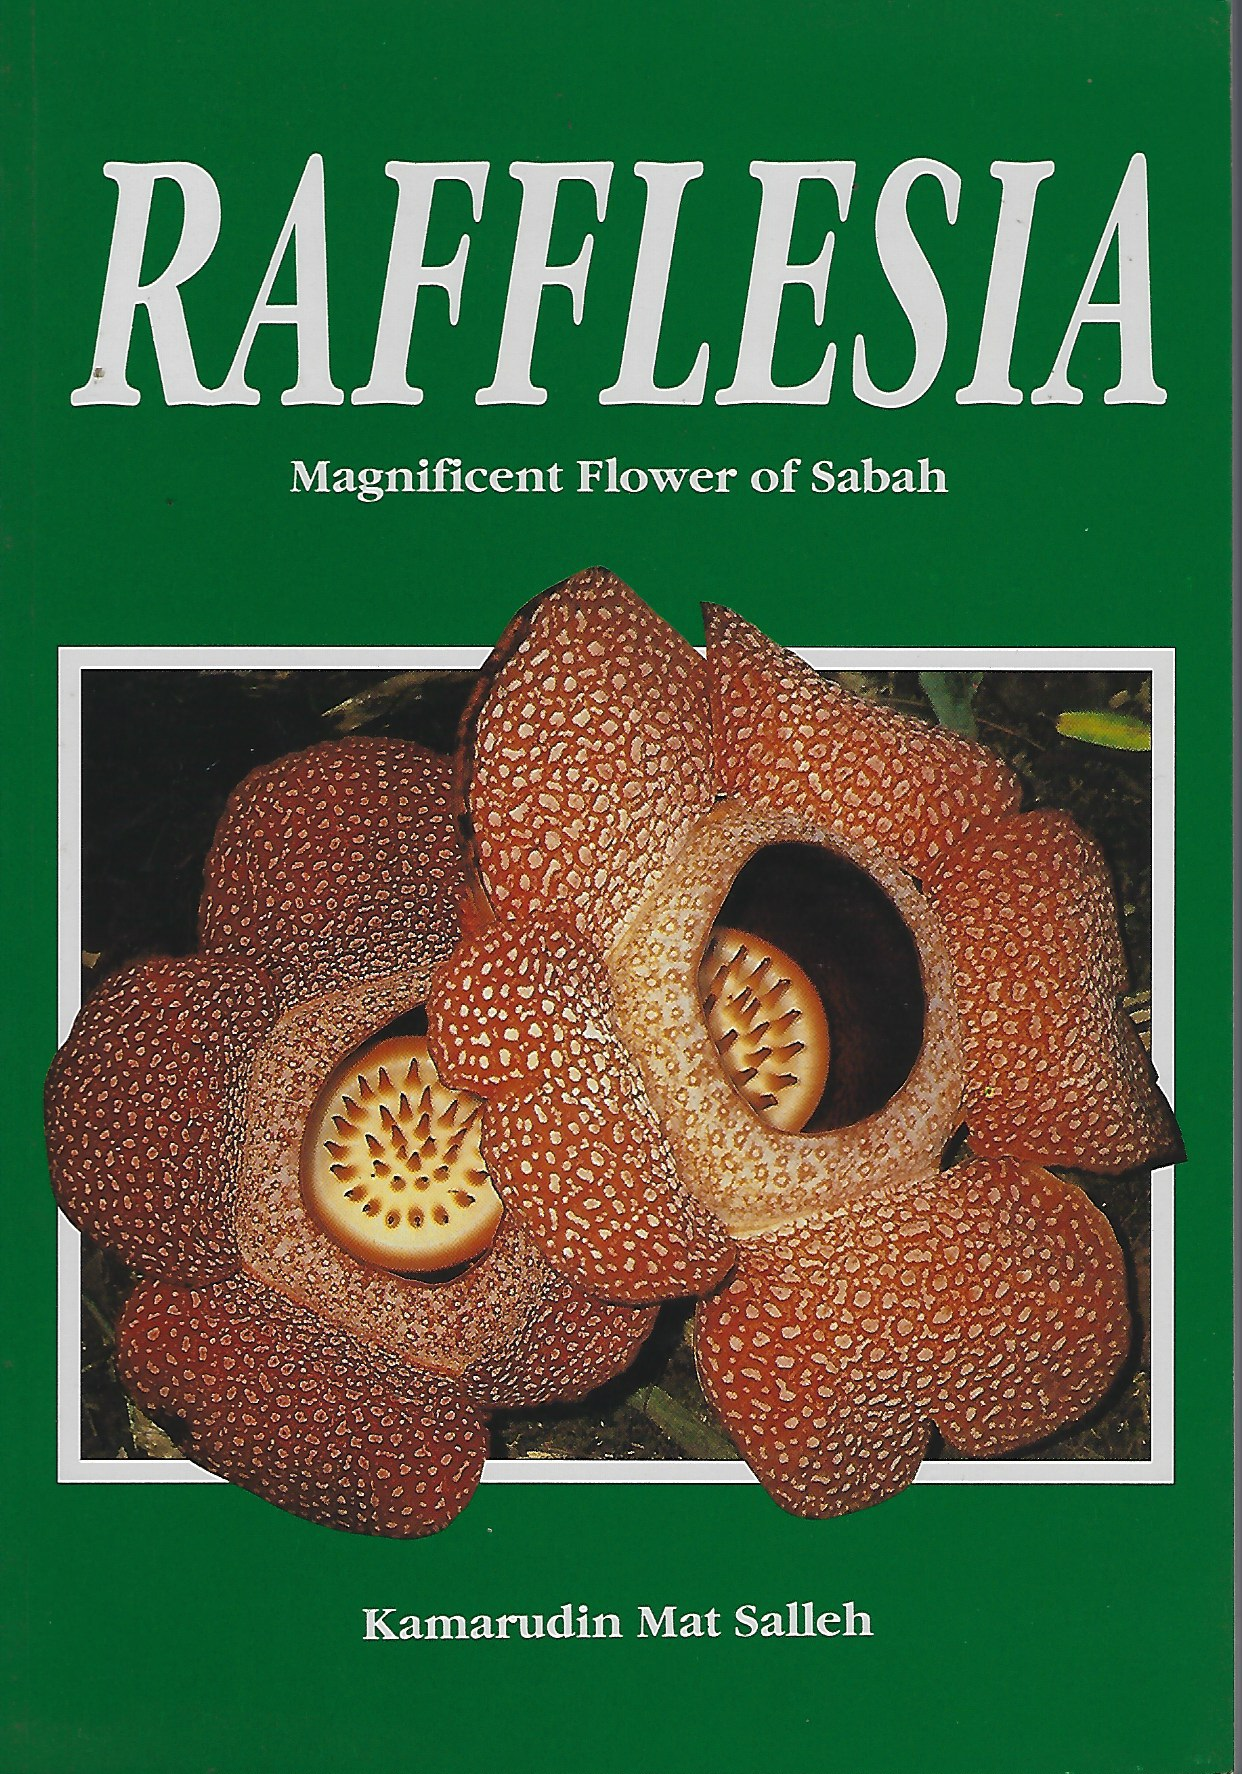 Image for Rafflesia - Magnificent Flower of Sabah